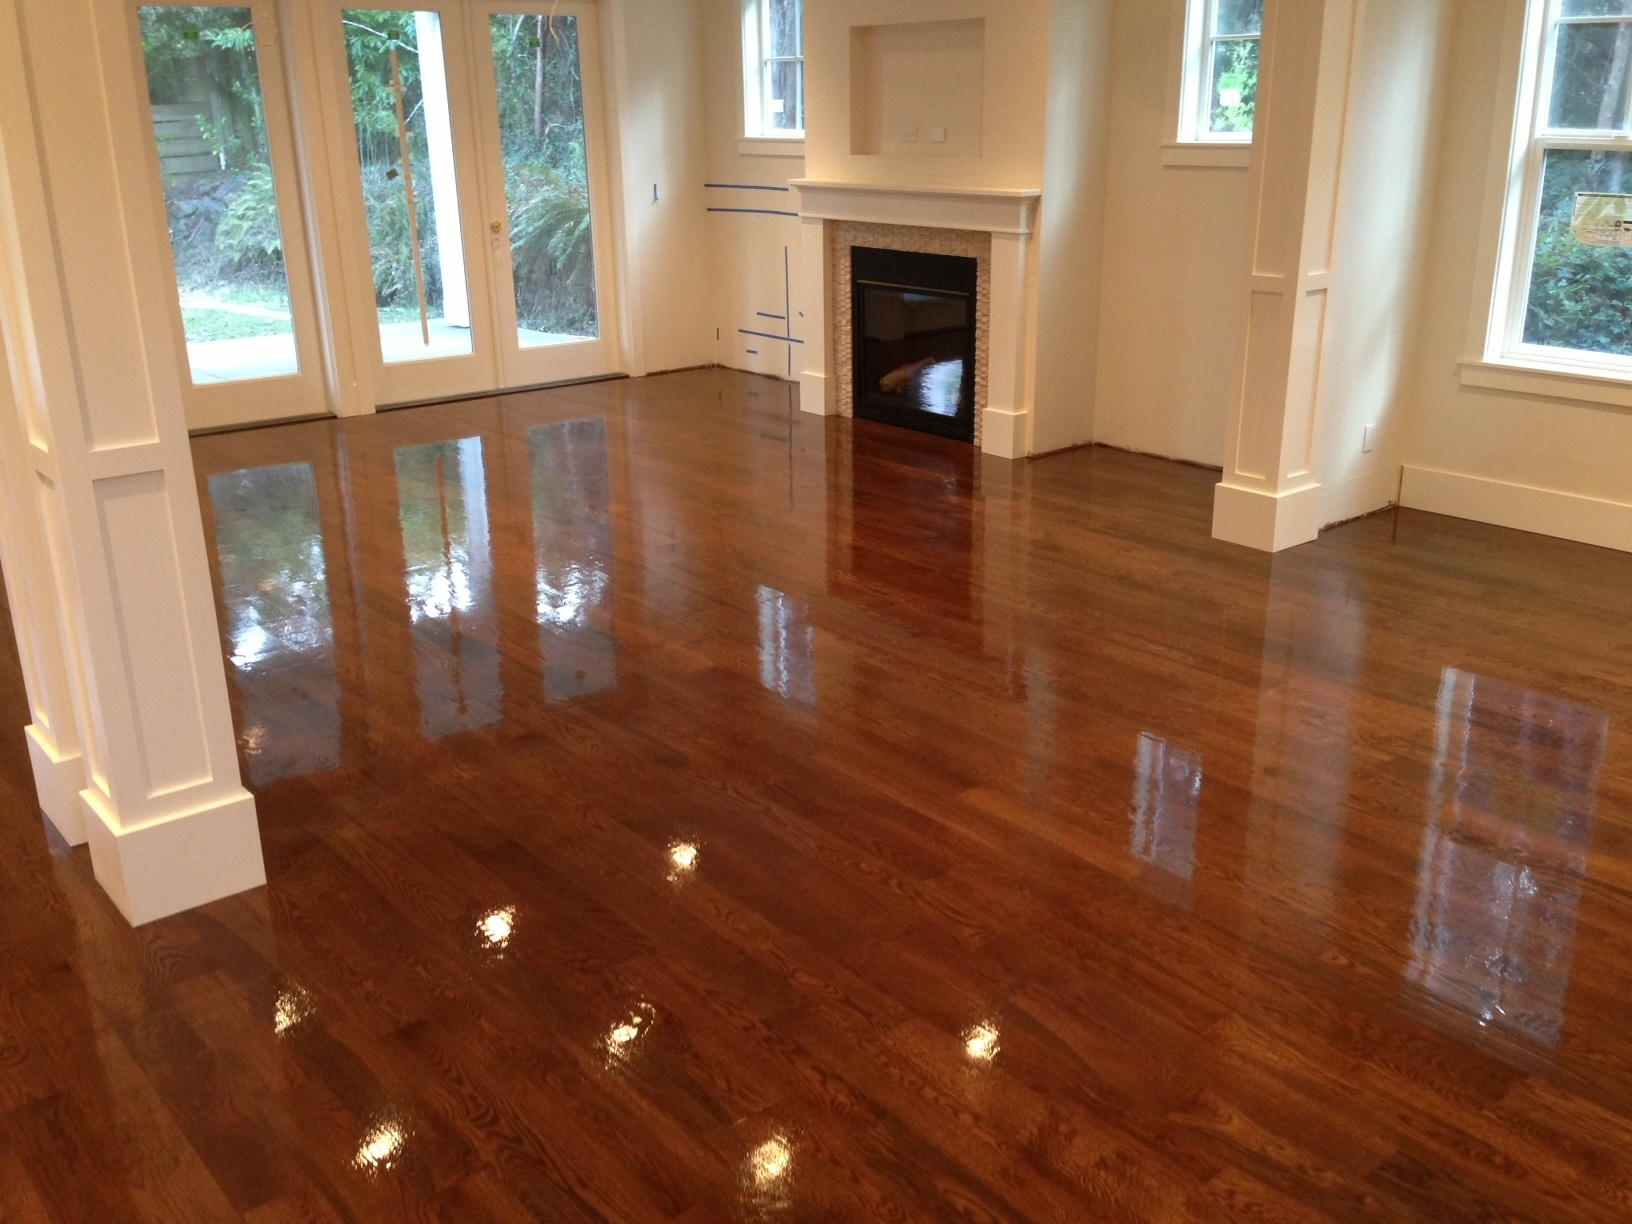 Refurbishing Wooden Floors